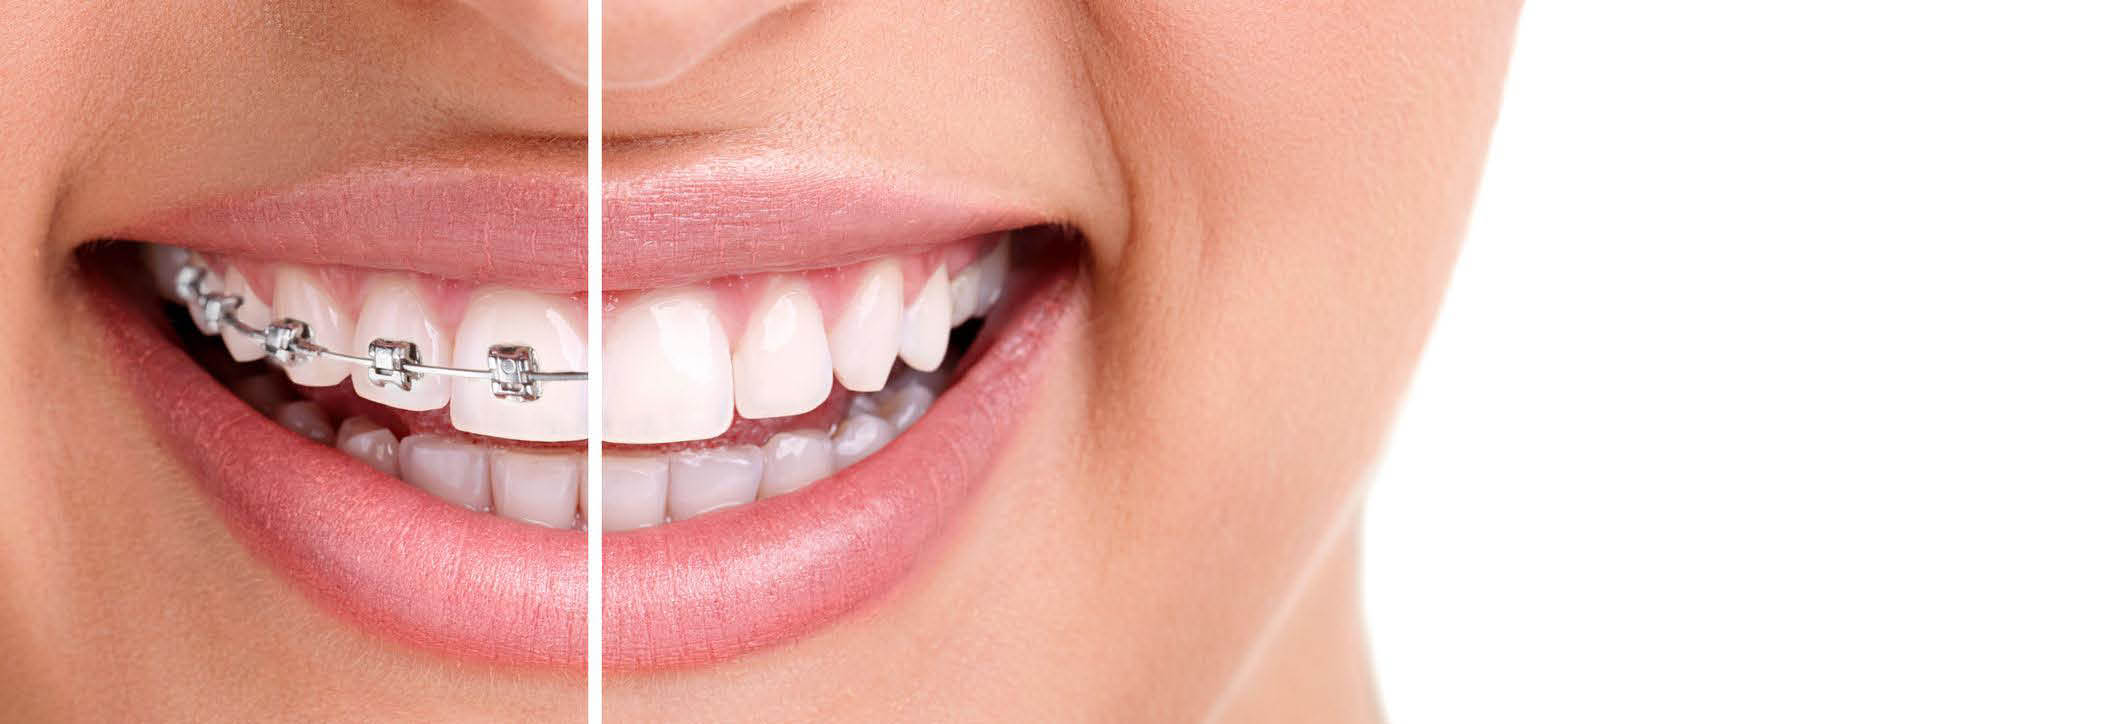 Dental invisible braces, best braces for adults, cost of clear braces, clear braces price,